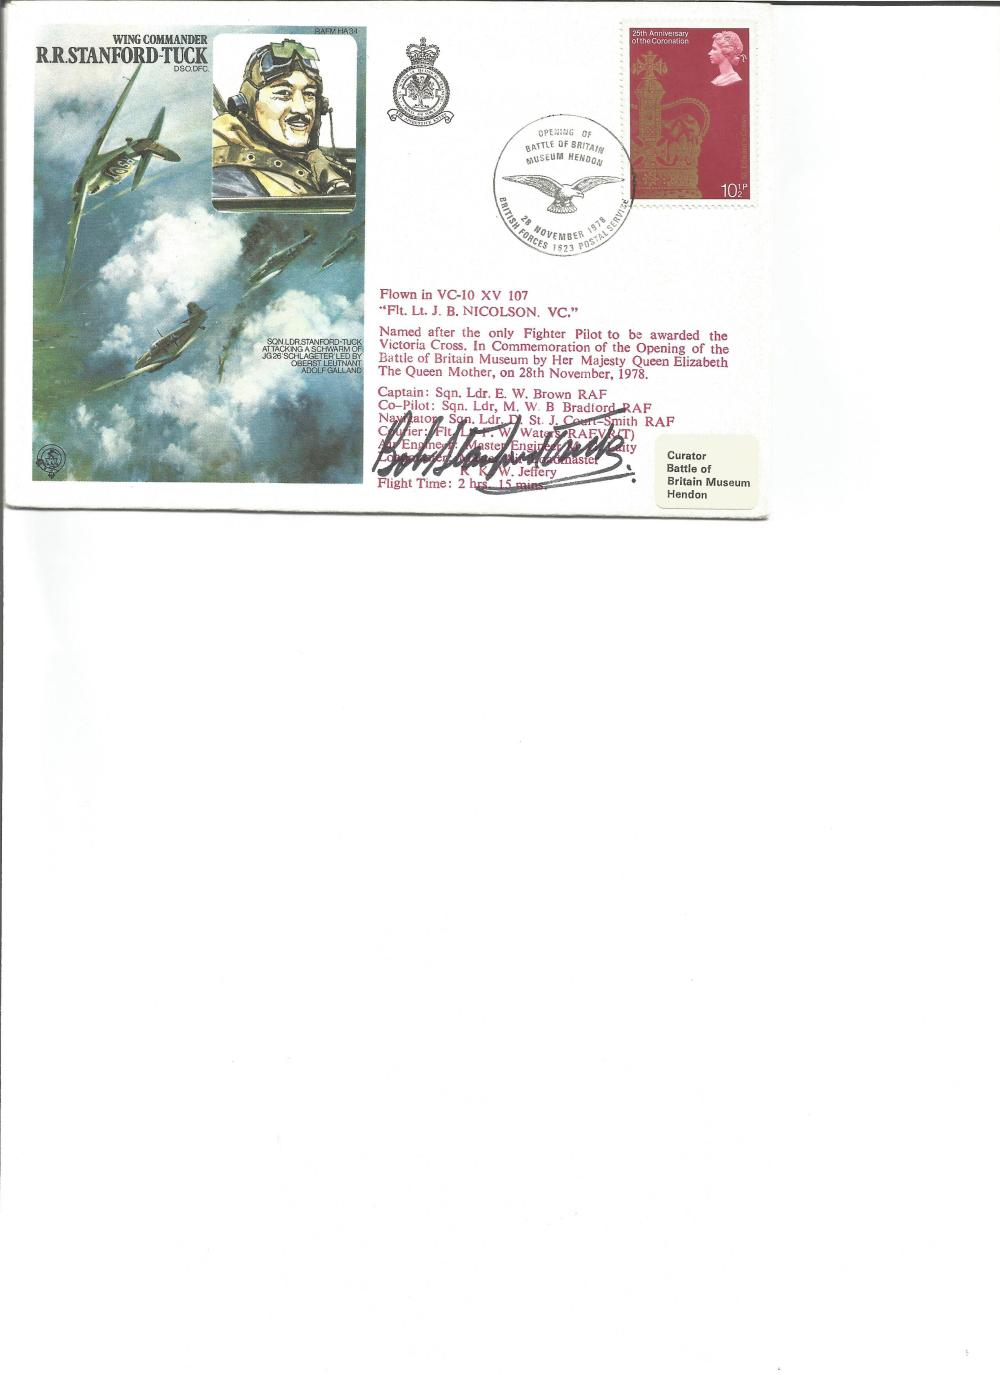 Wg Comm Robert Stanford Tuck signed on his own Historic Aviators cover. Good Condition. All signed